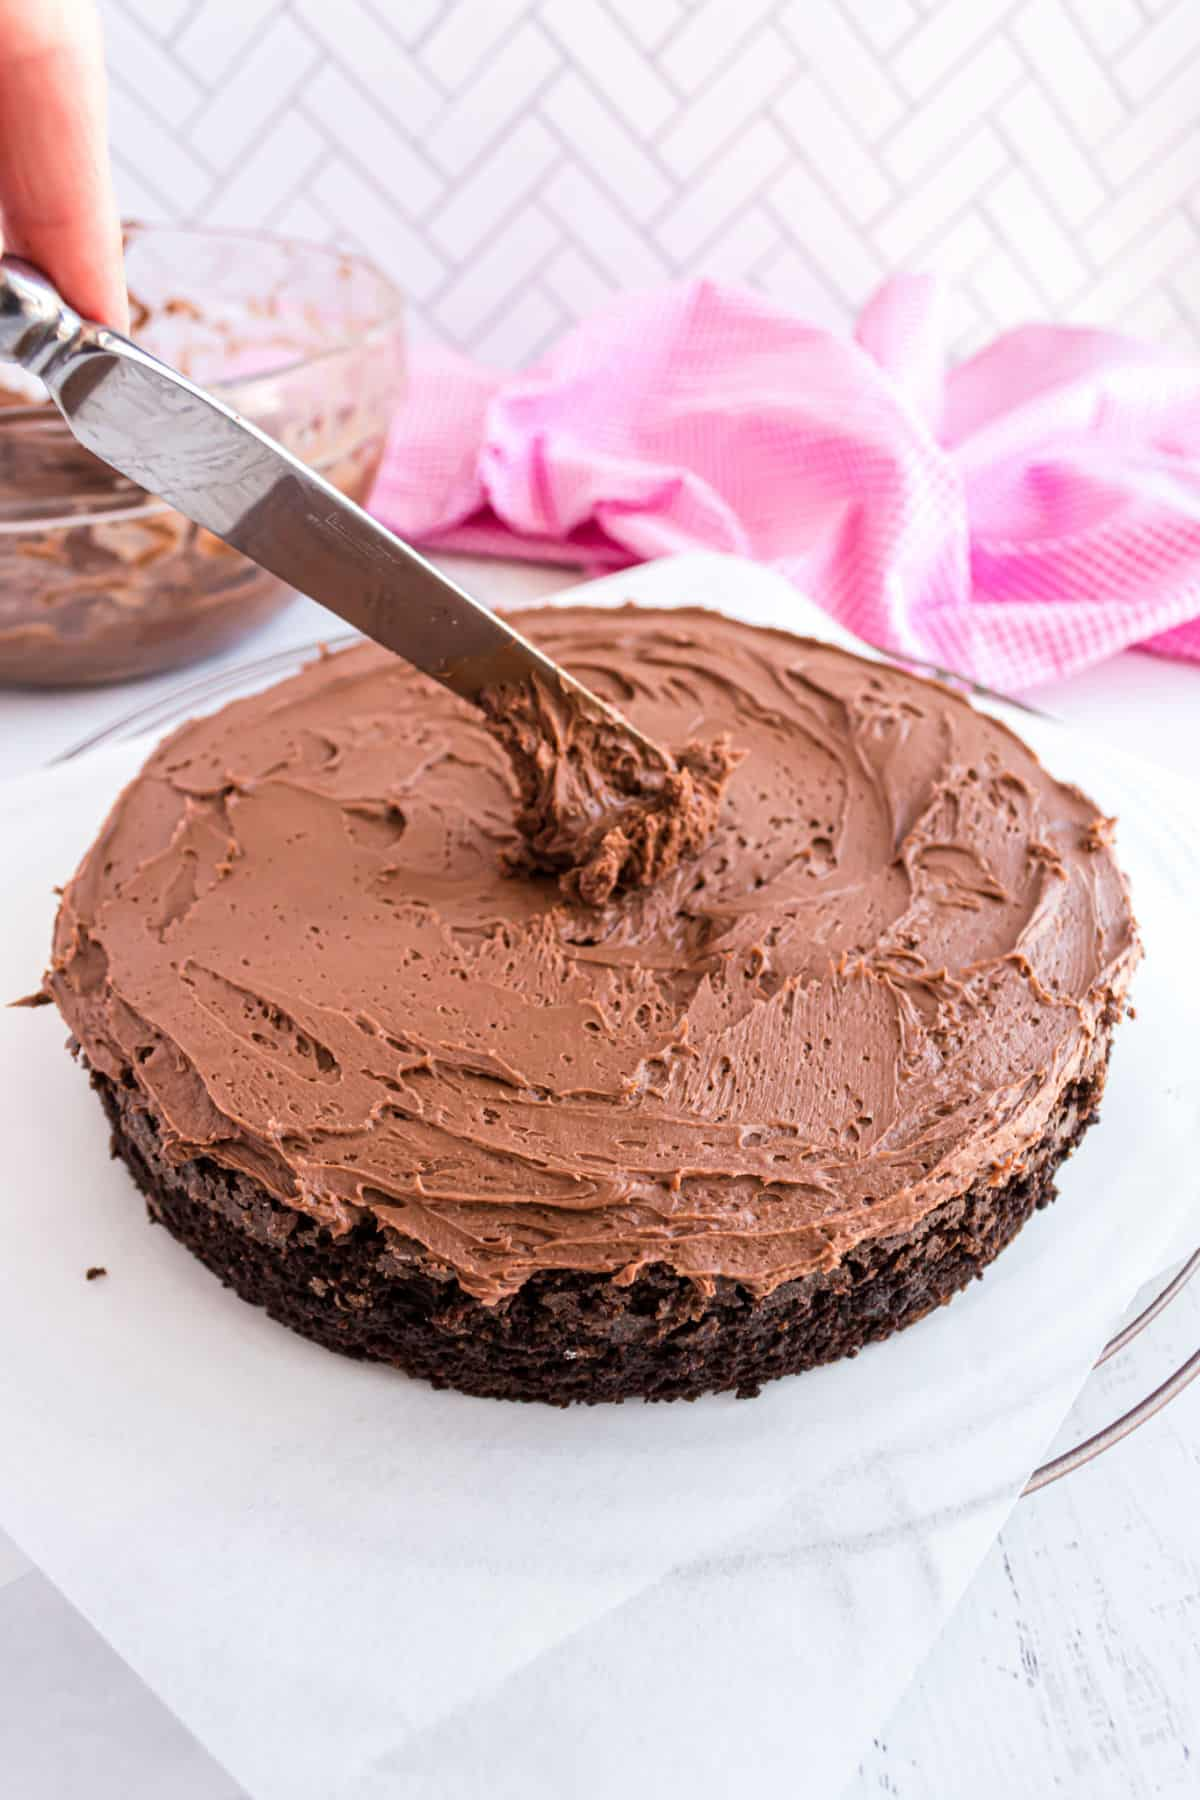 Chocolate frosting being added to a chocolate layer cake.